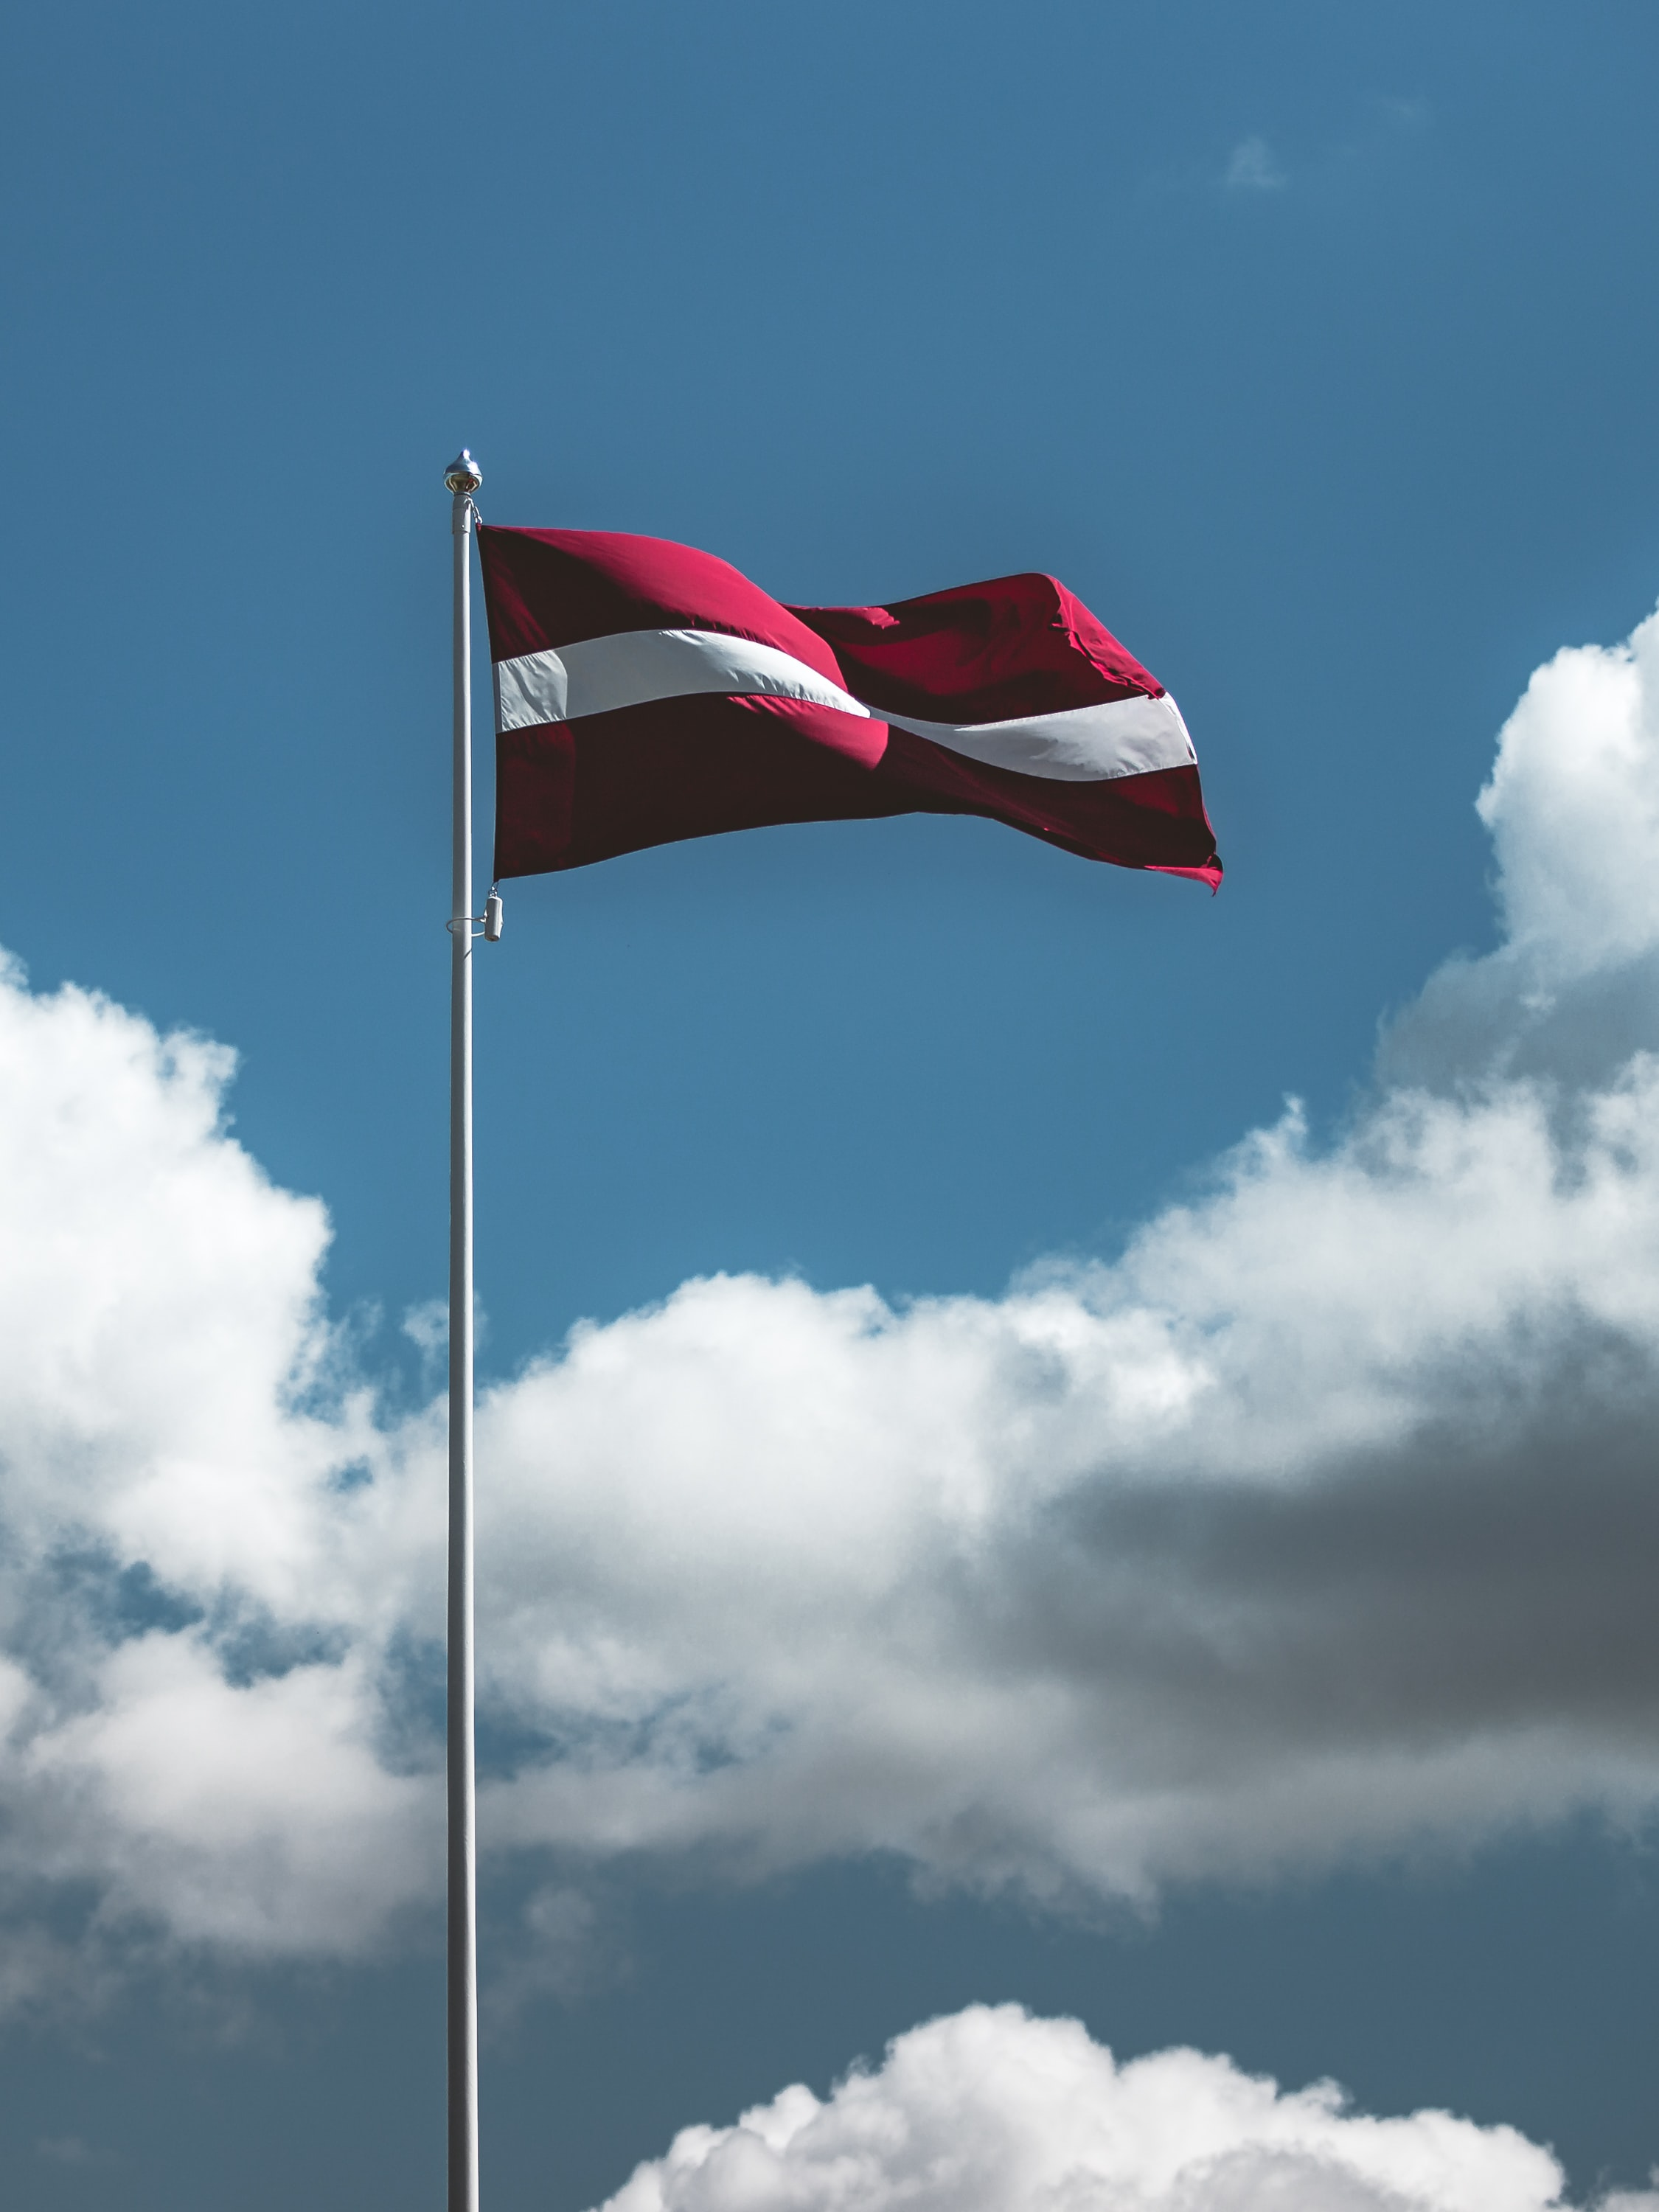 waving red and white striped flag on pole